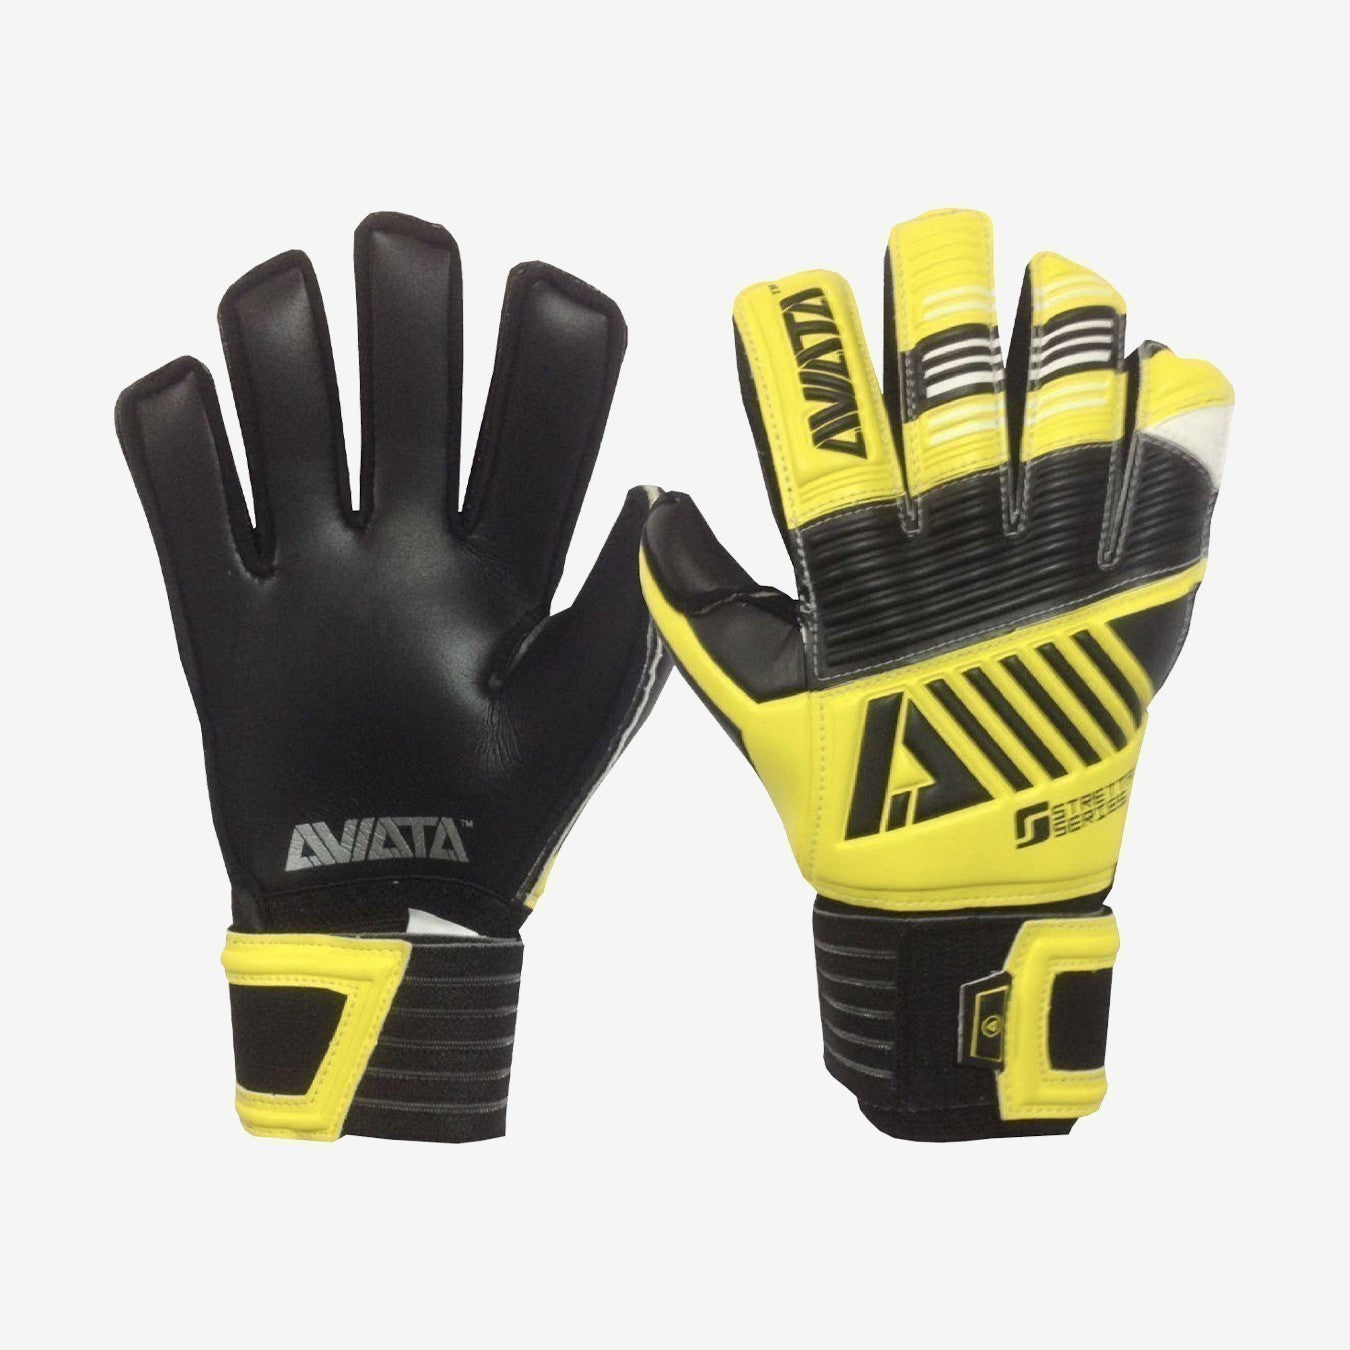 Kid's Stretta Solar Burst V7 Goalkeeper Gloves - Black/Yellow